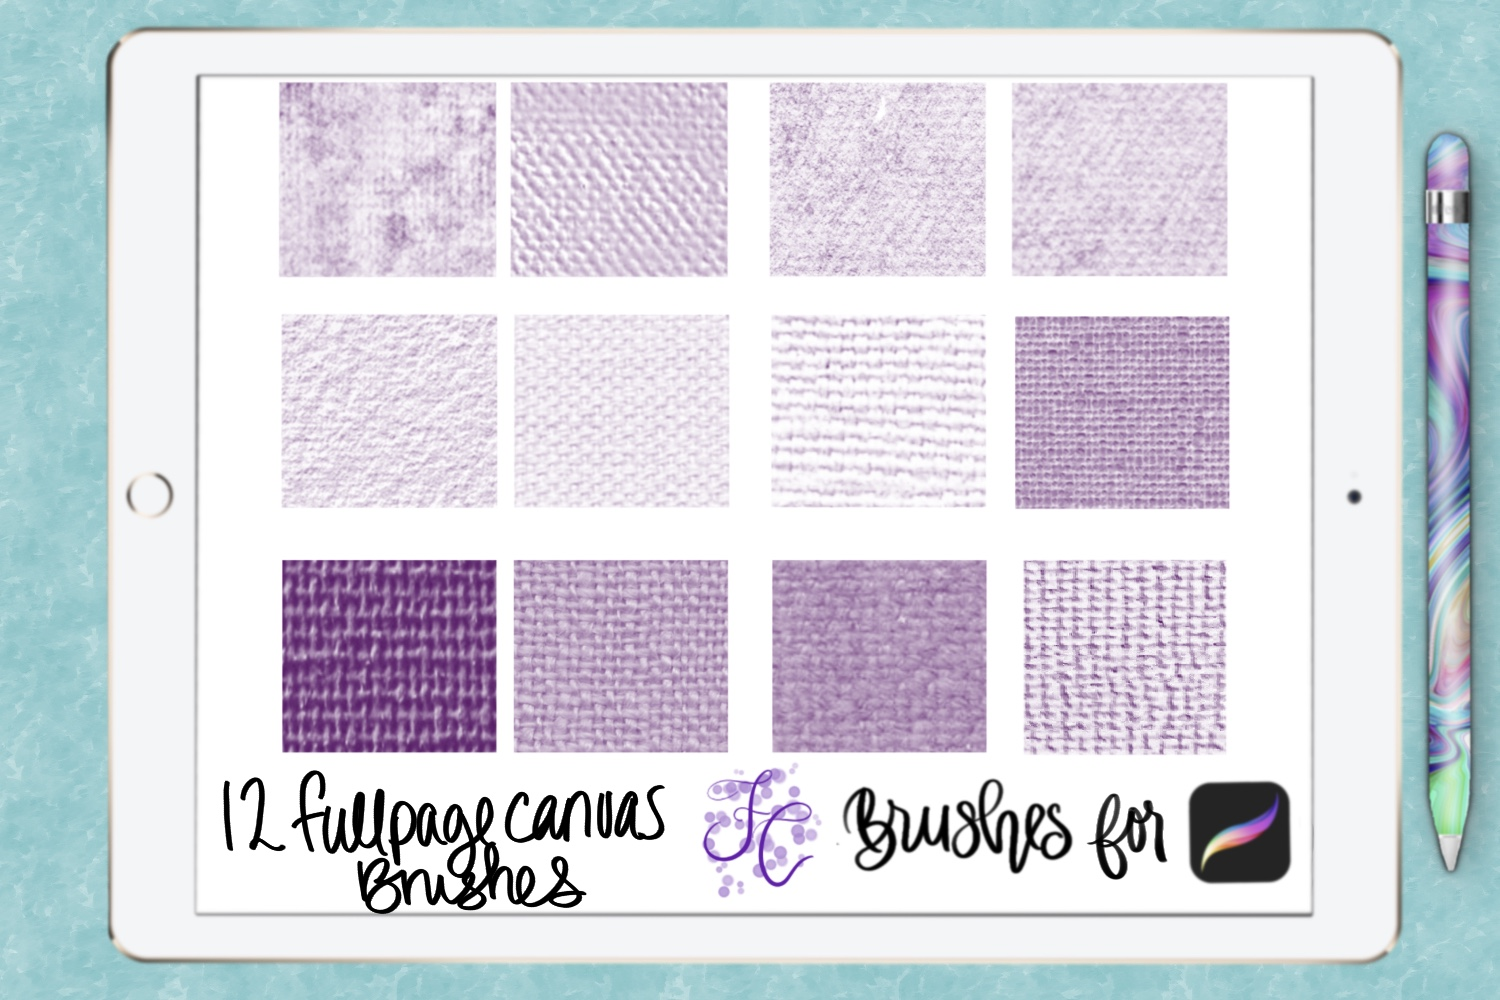 FC-canvas set 1 brushes for PROCREATE example image 2